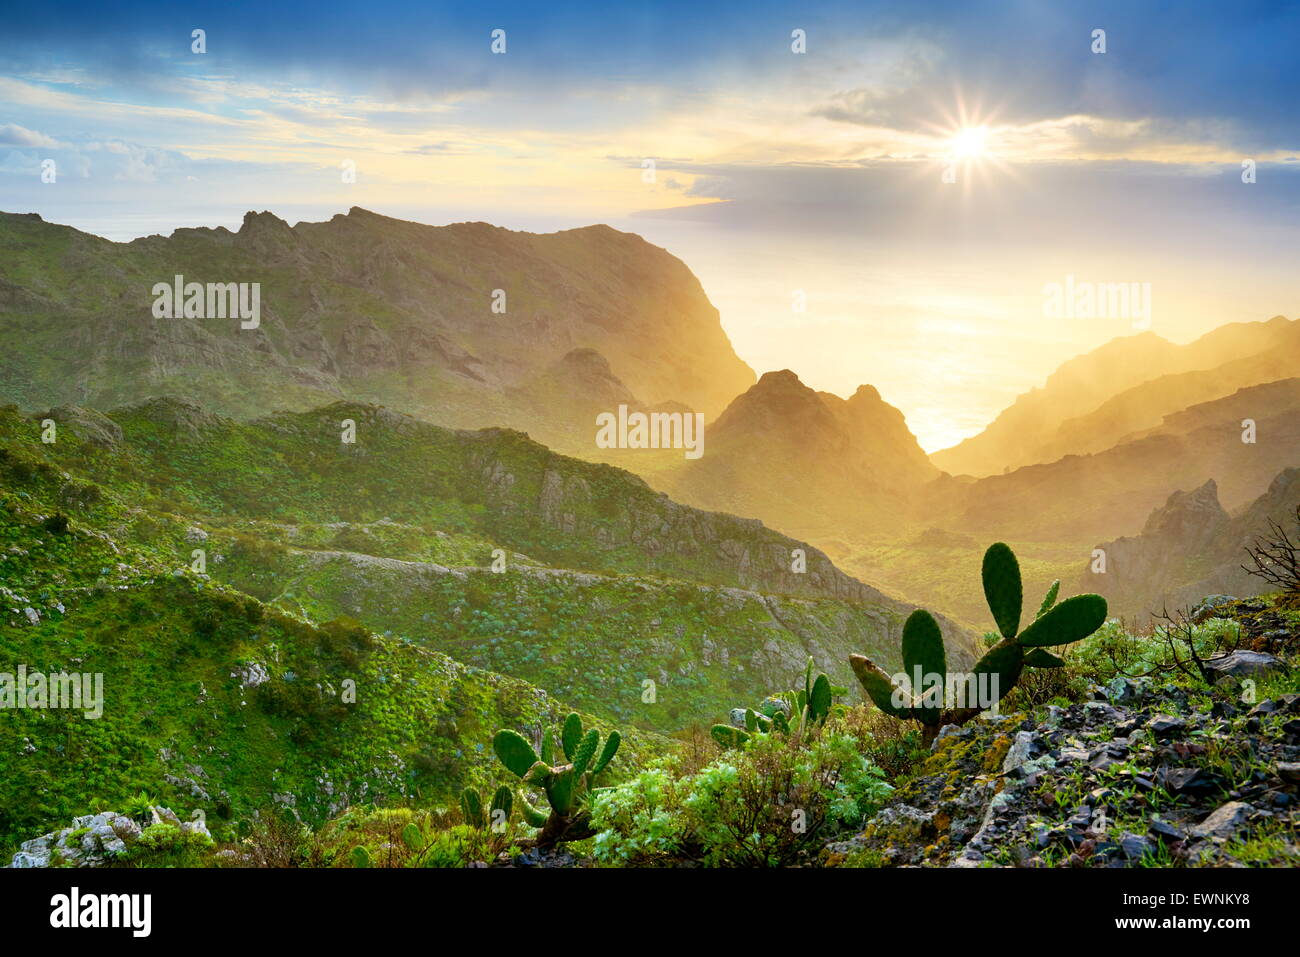 Sunset at Tenerife, Canary Islands, Spain - Stock Image